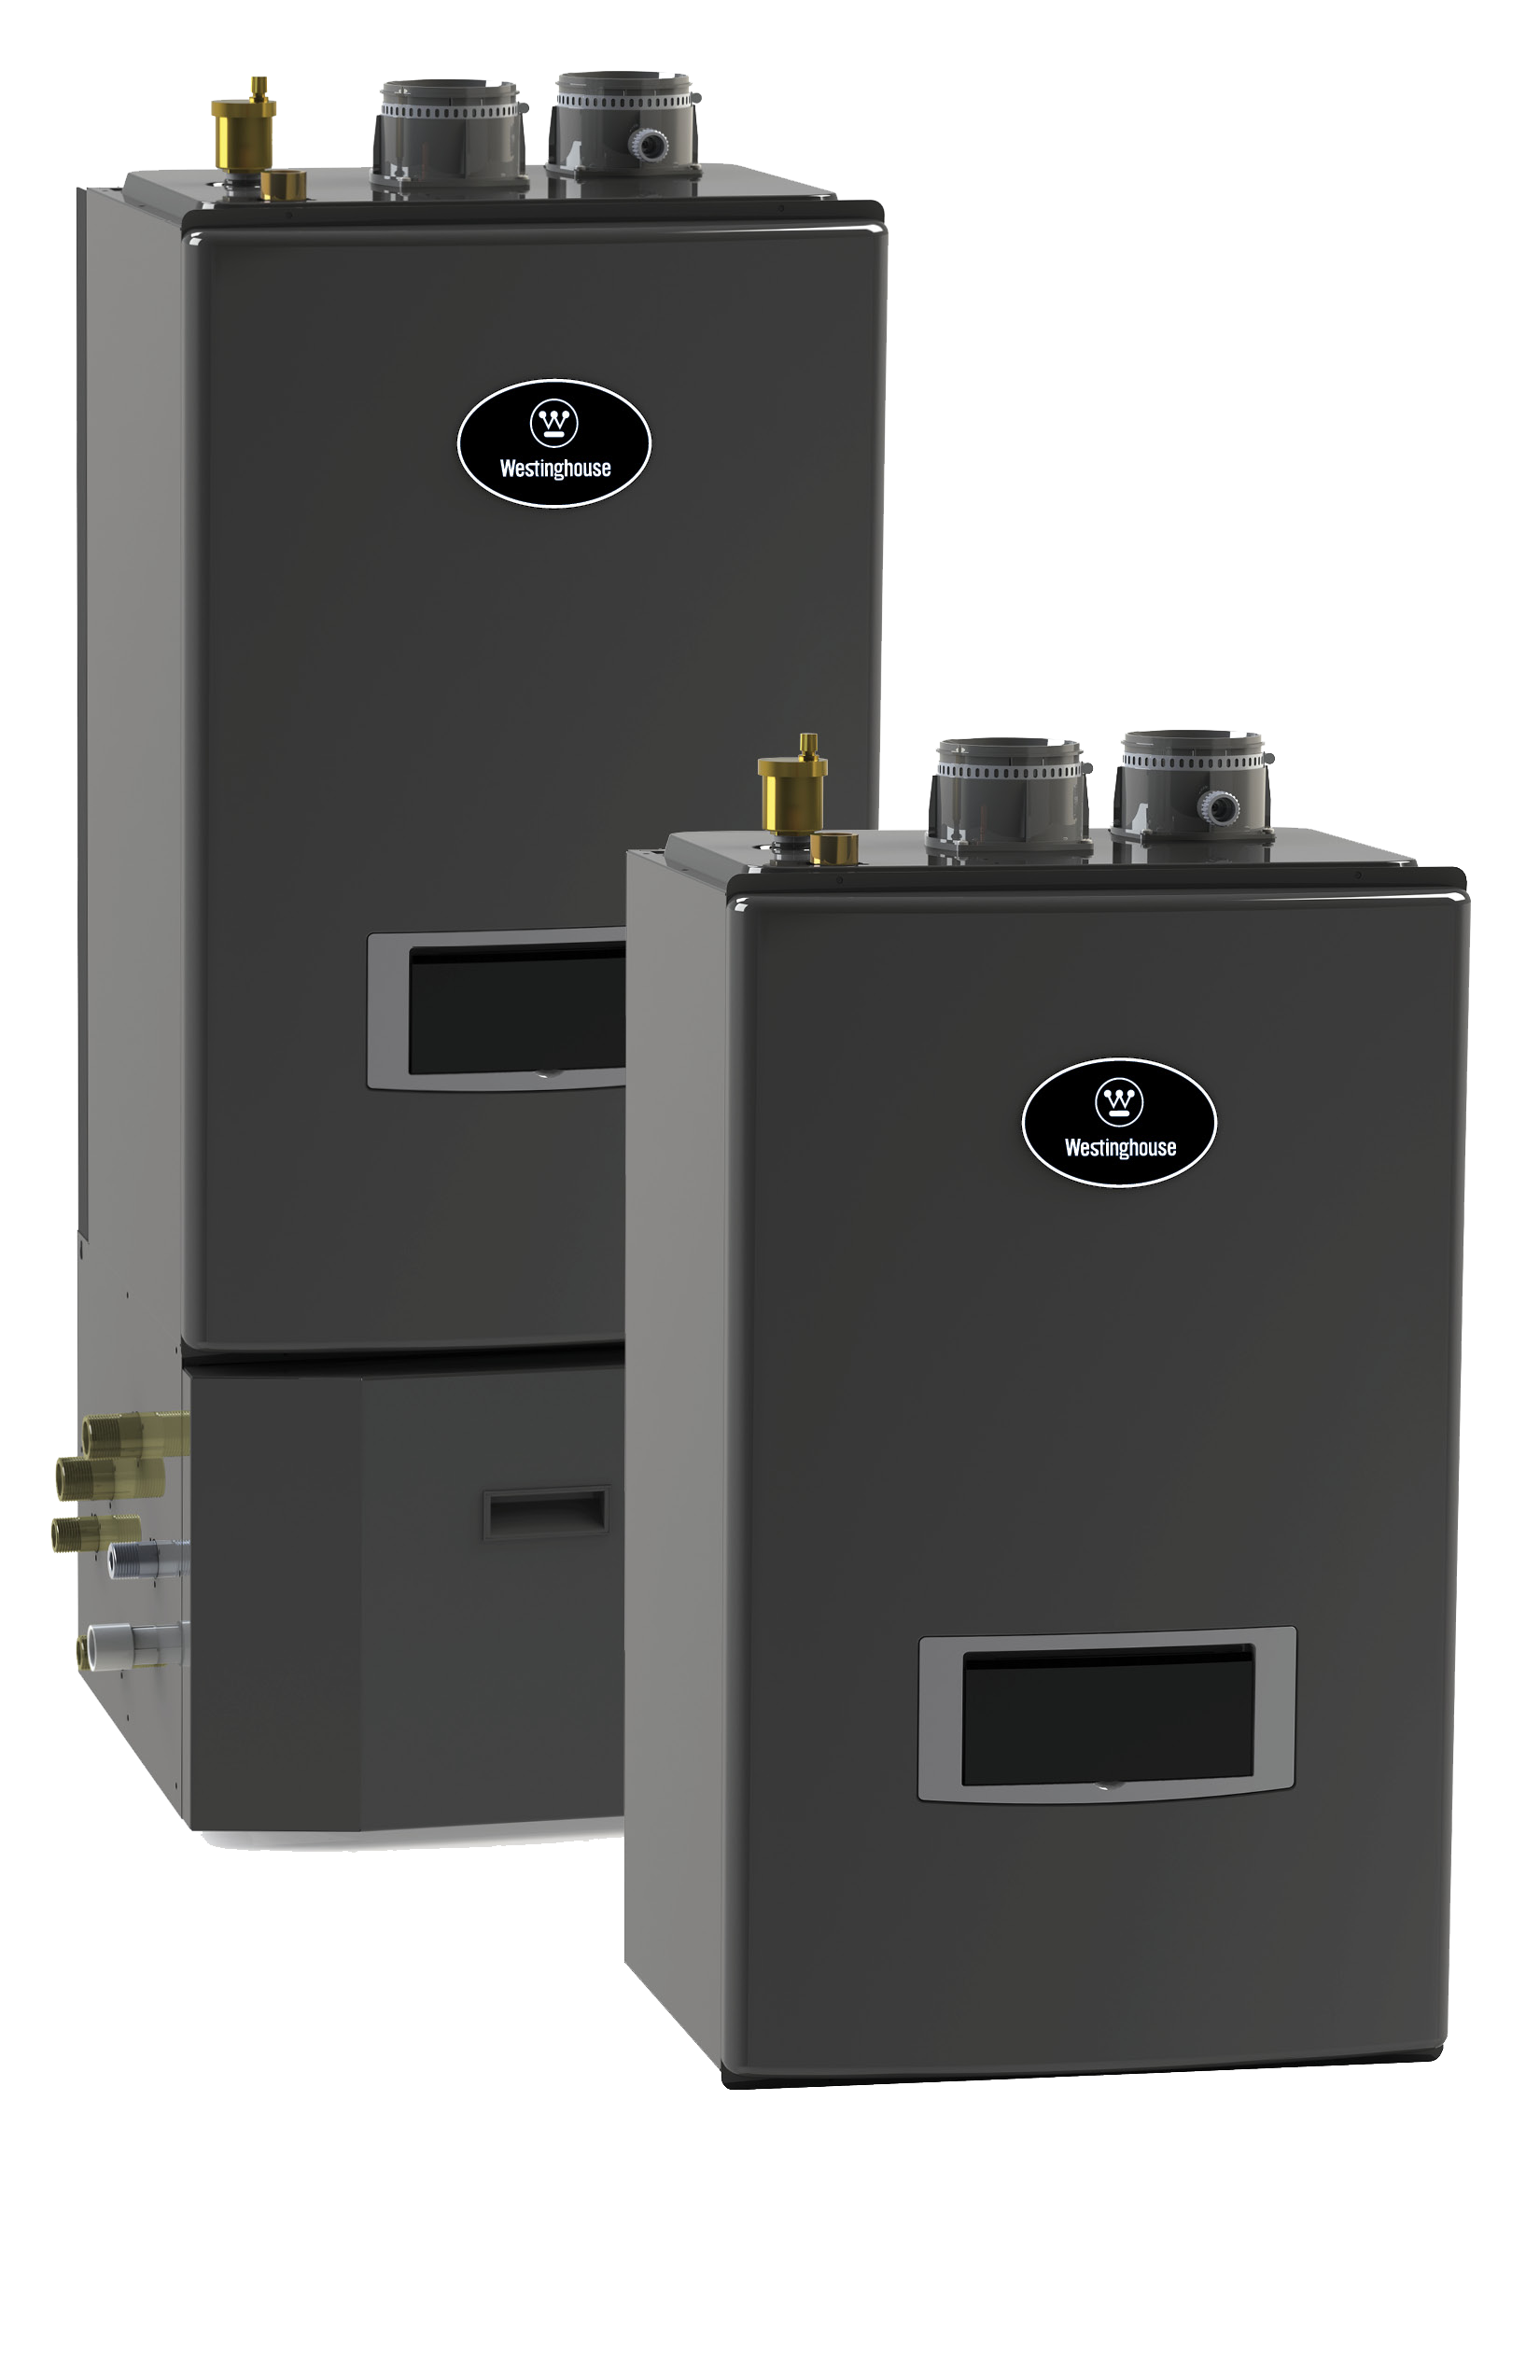 Westinghouse High Efficiency Boiler with Optional Water Heating – Floor Standing Unit